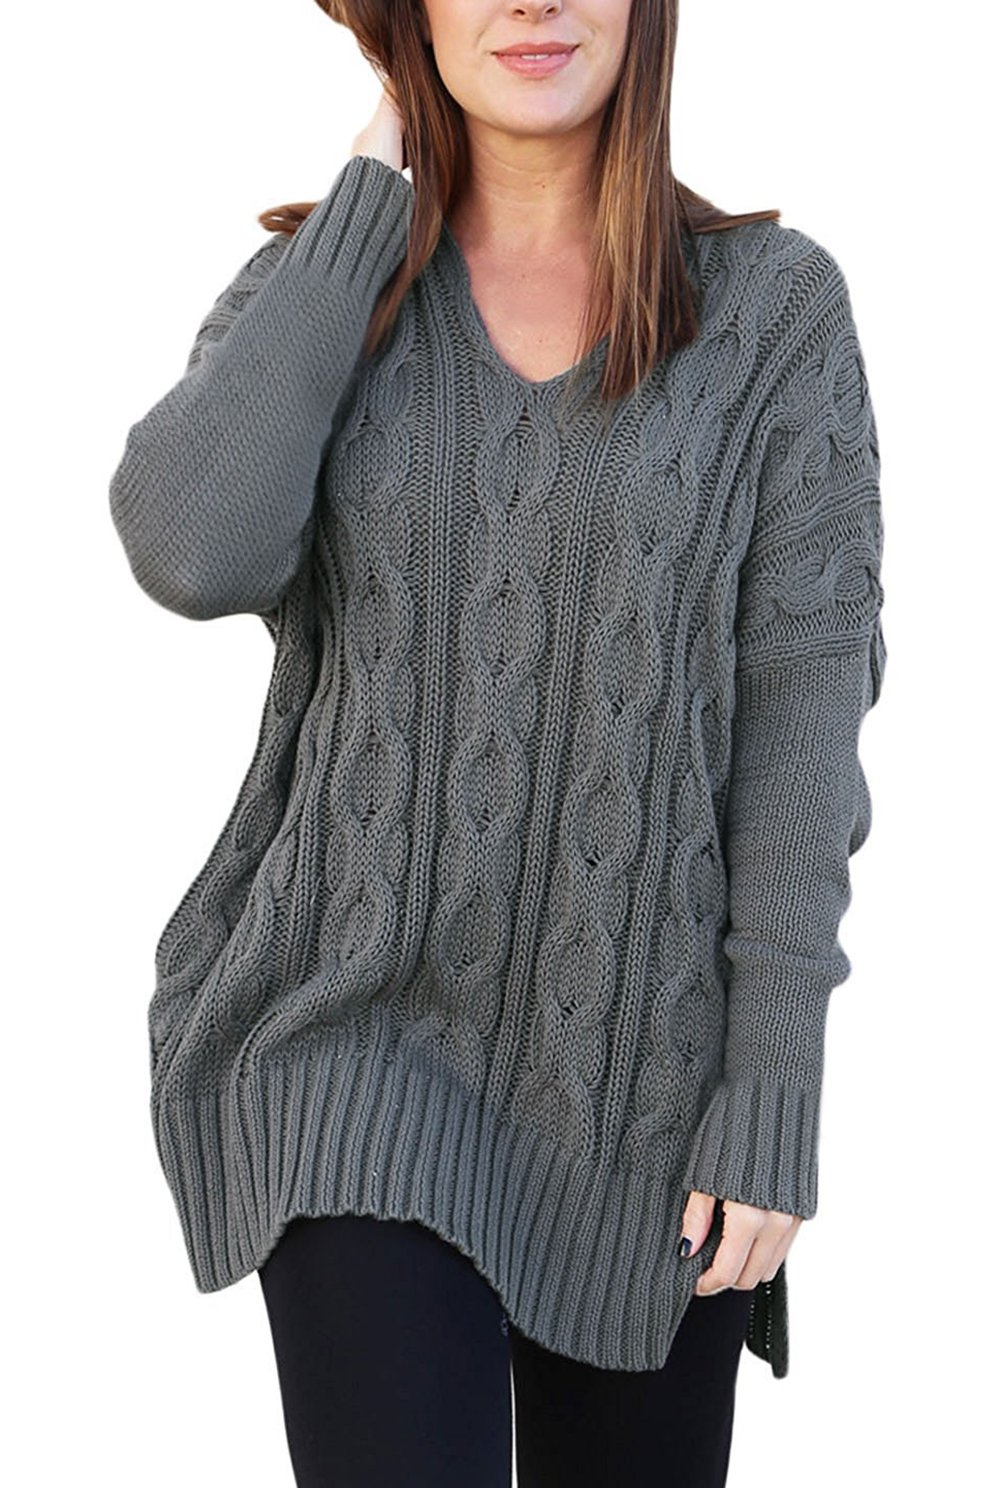 Twippo Womens Ladies Oversized Baggy Long Knitted Plain Chunky Top Knit Grey S by Twippo